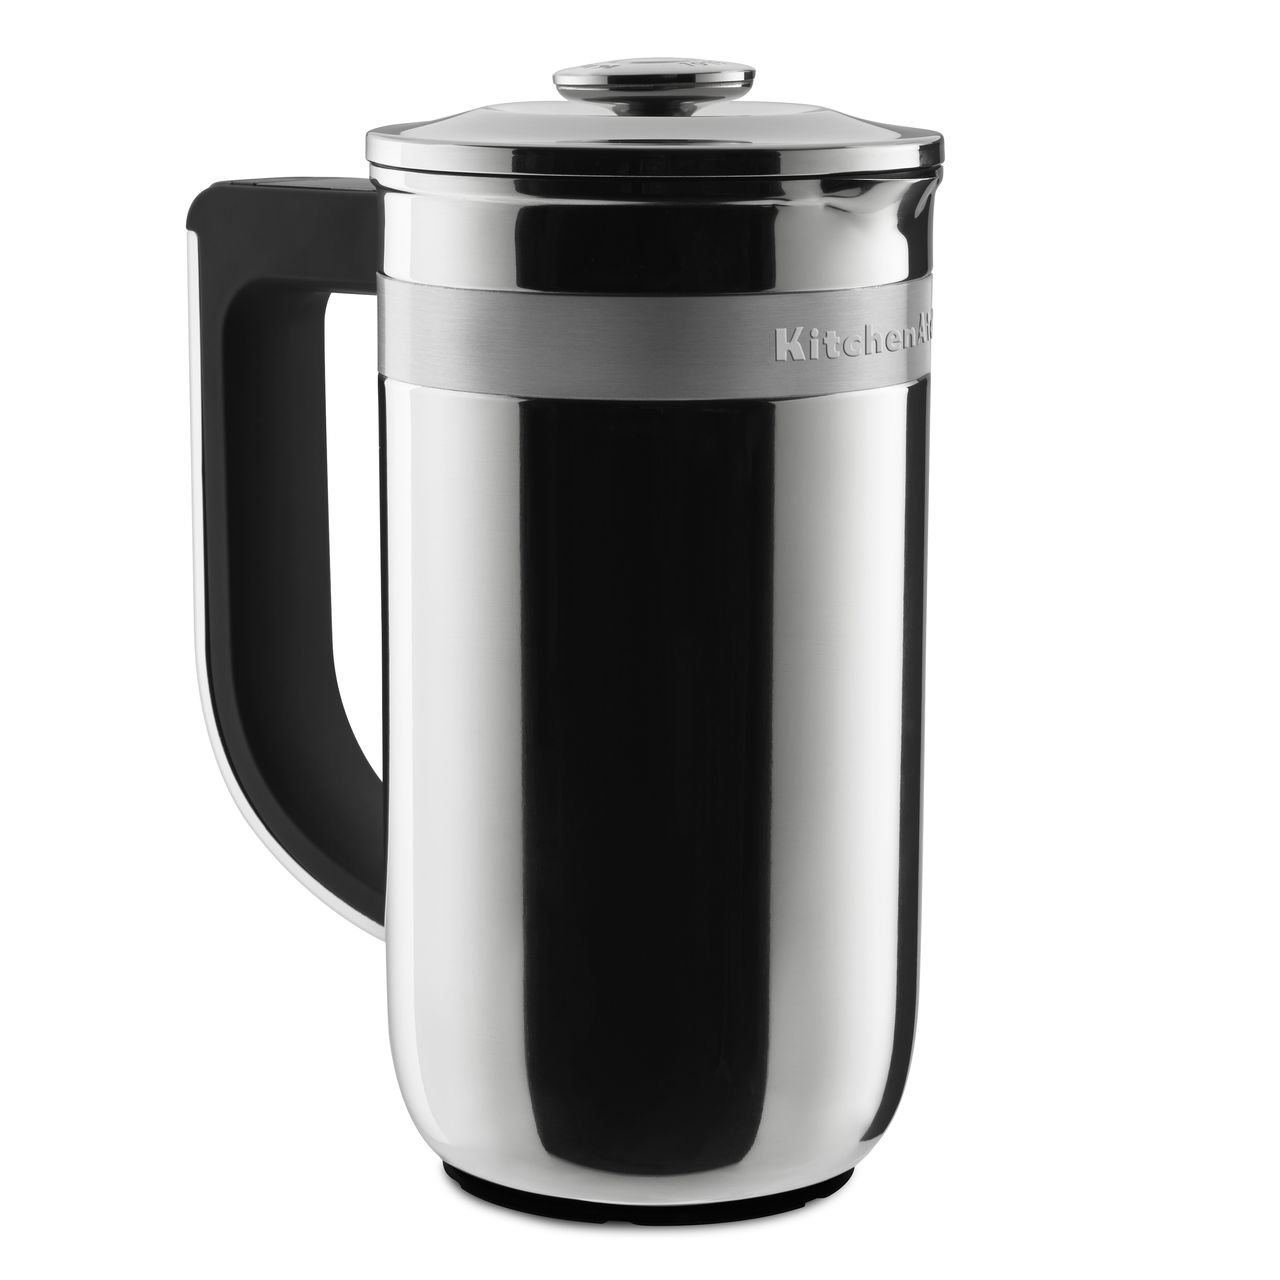 KitchenAid® Precision Press Coffee Maker